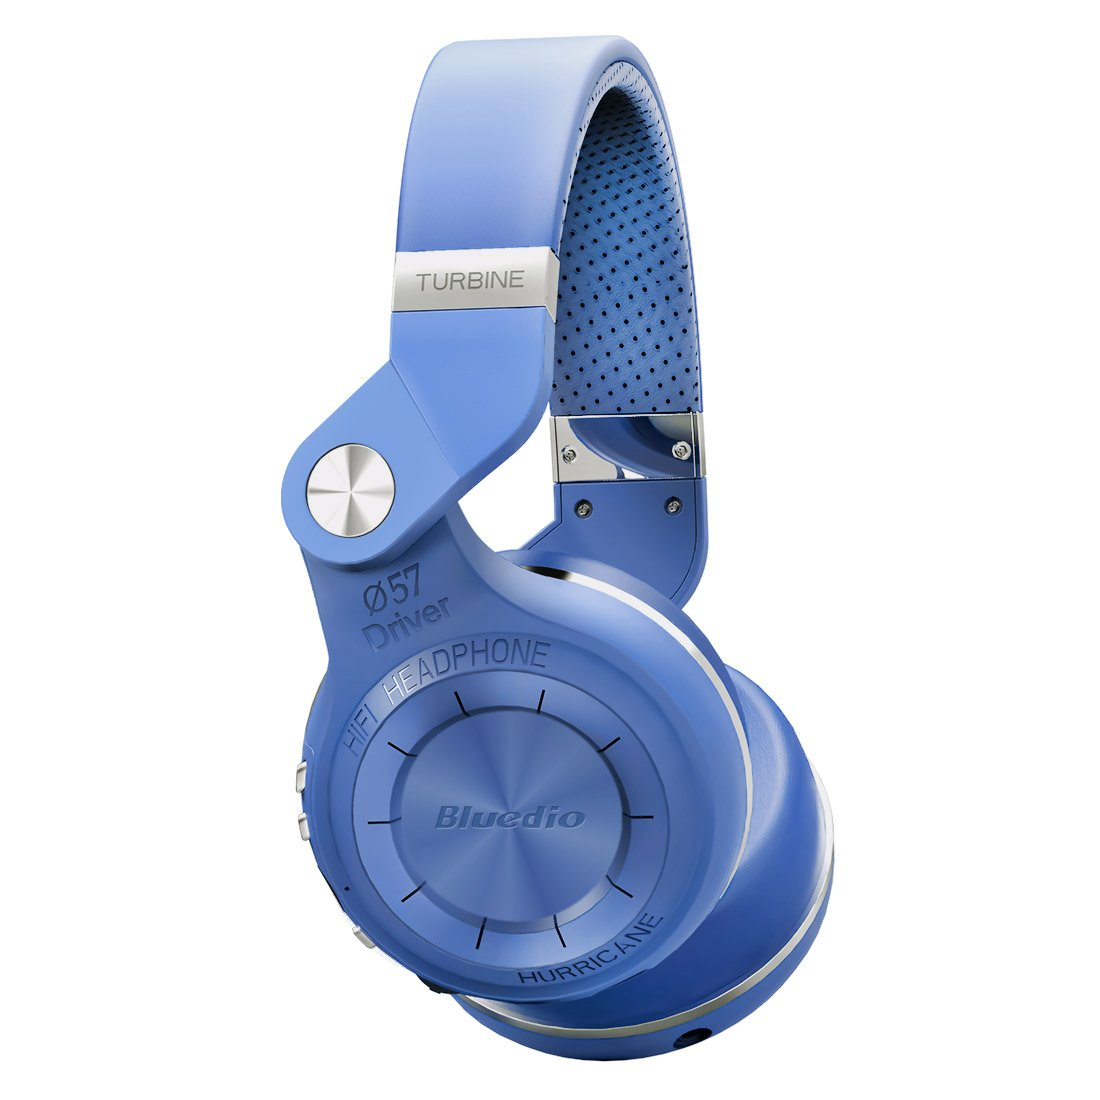 Bluedio T2S Turbine 2 Shooting Brake, Cuffie Wireless, Bluetooth 4.1, Colore Blu